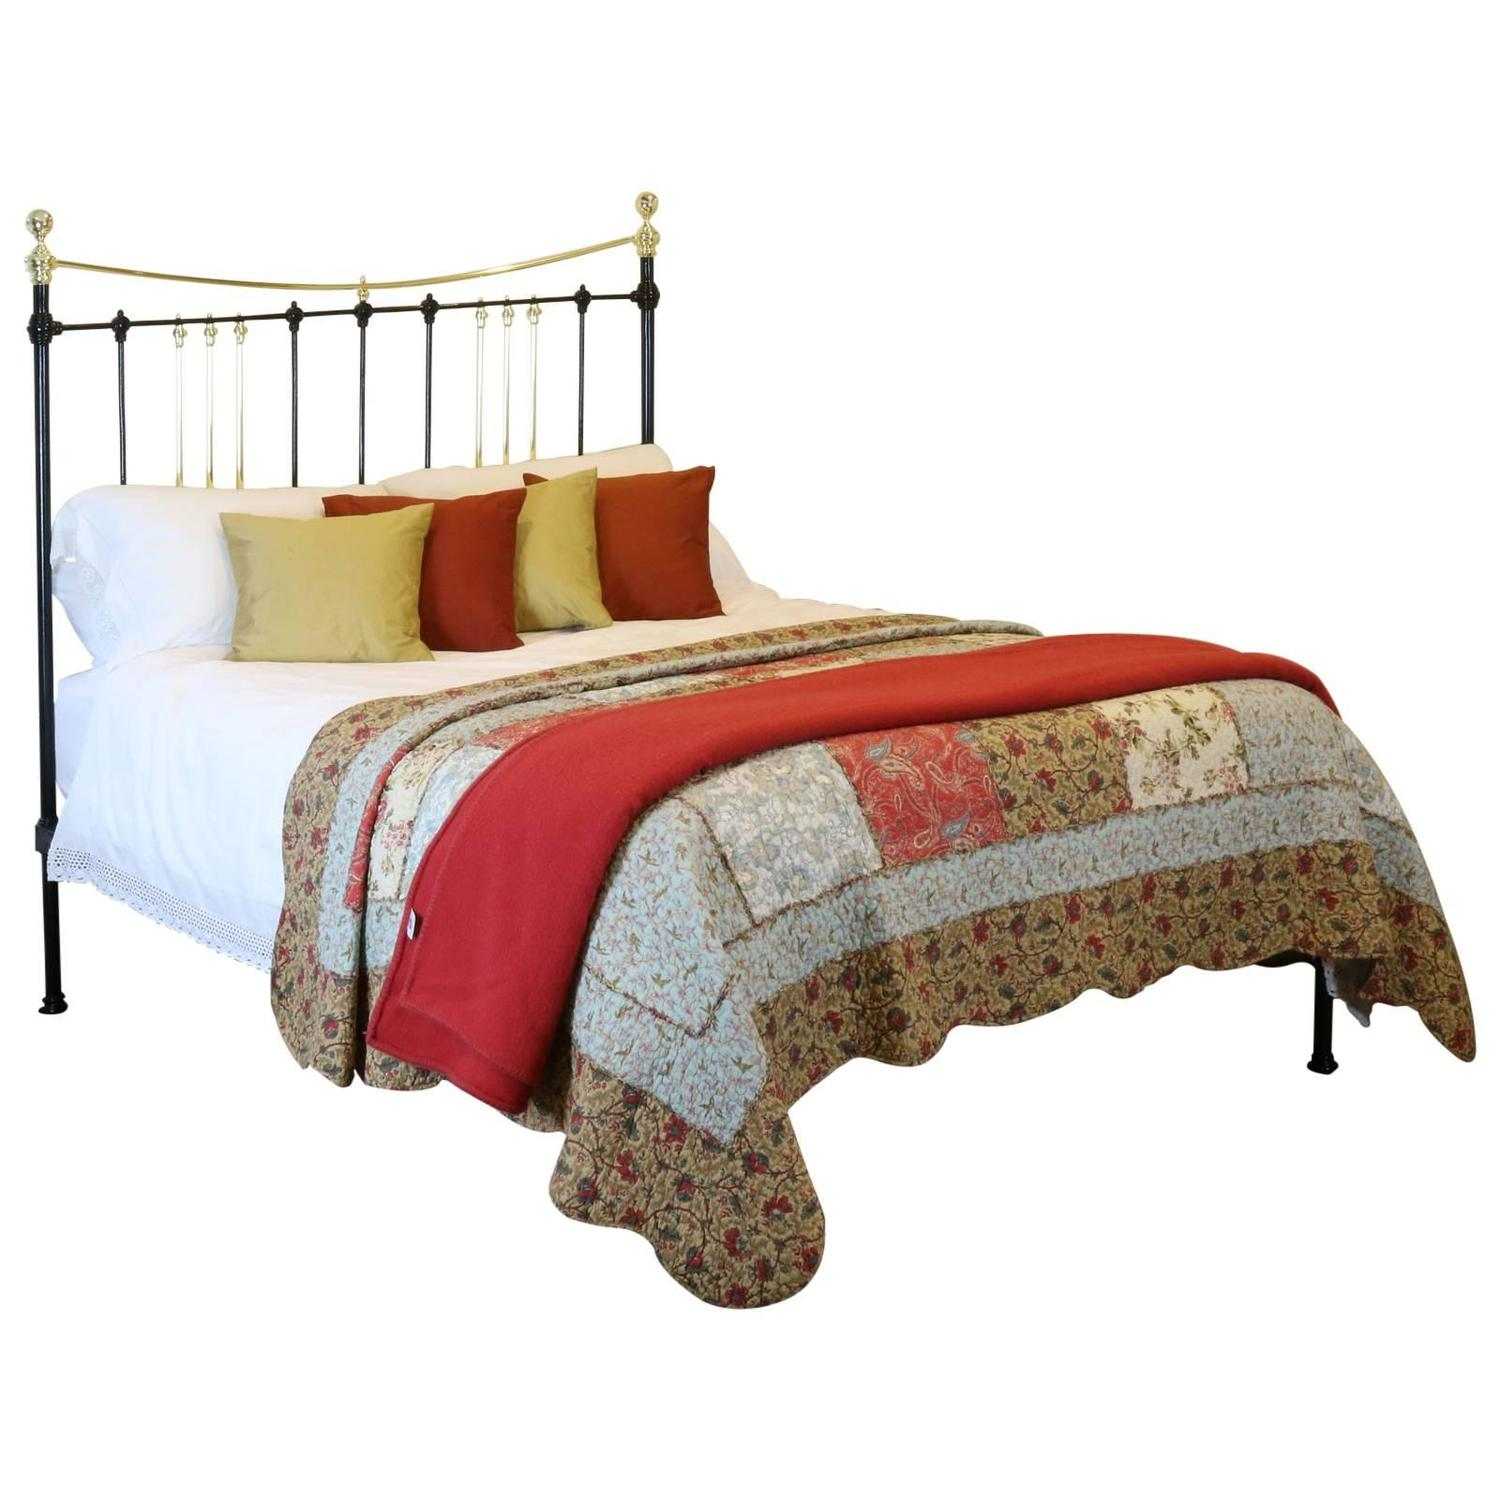 Brass and Iron Platform Bed